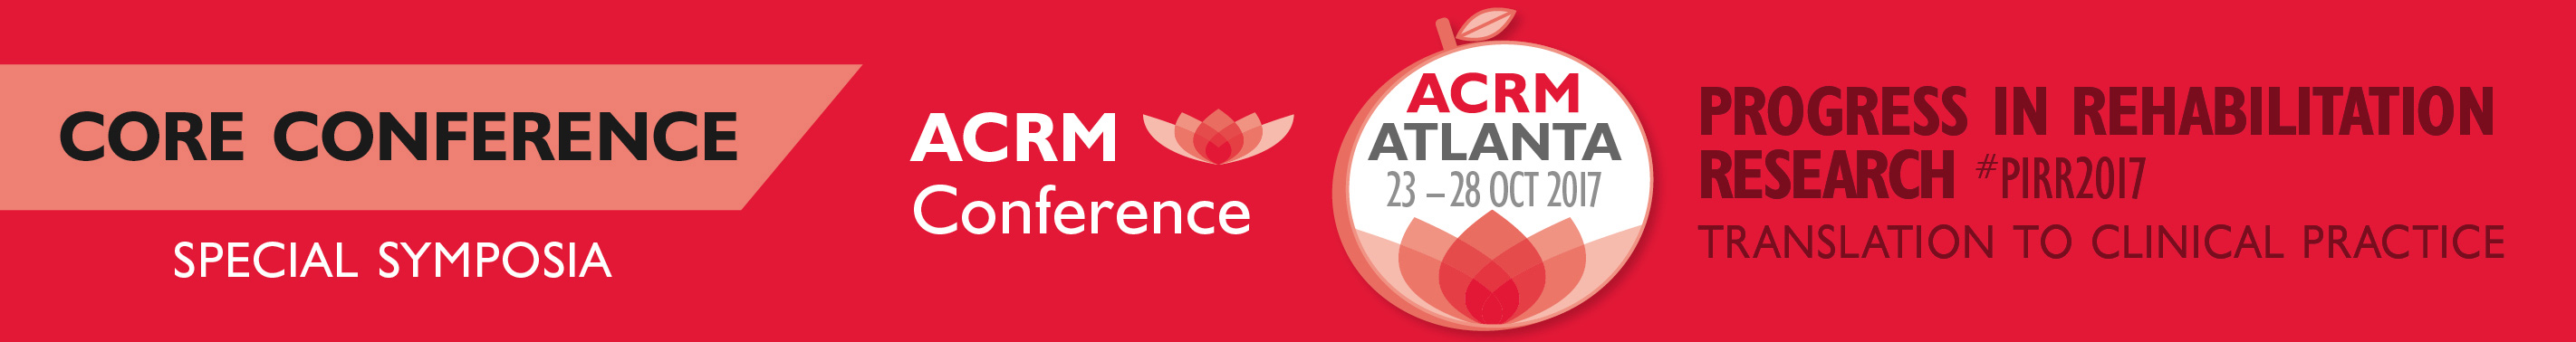 ACRM Annual Conference Special Symposium